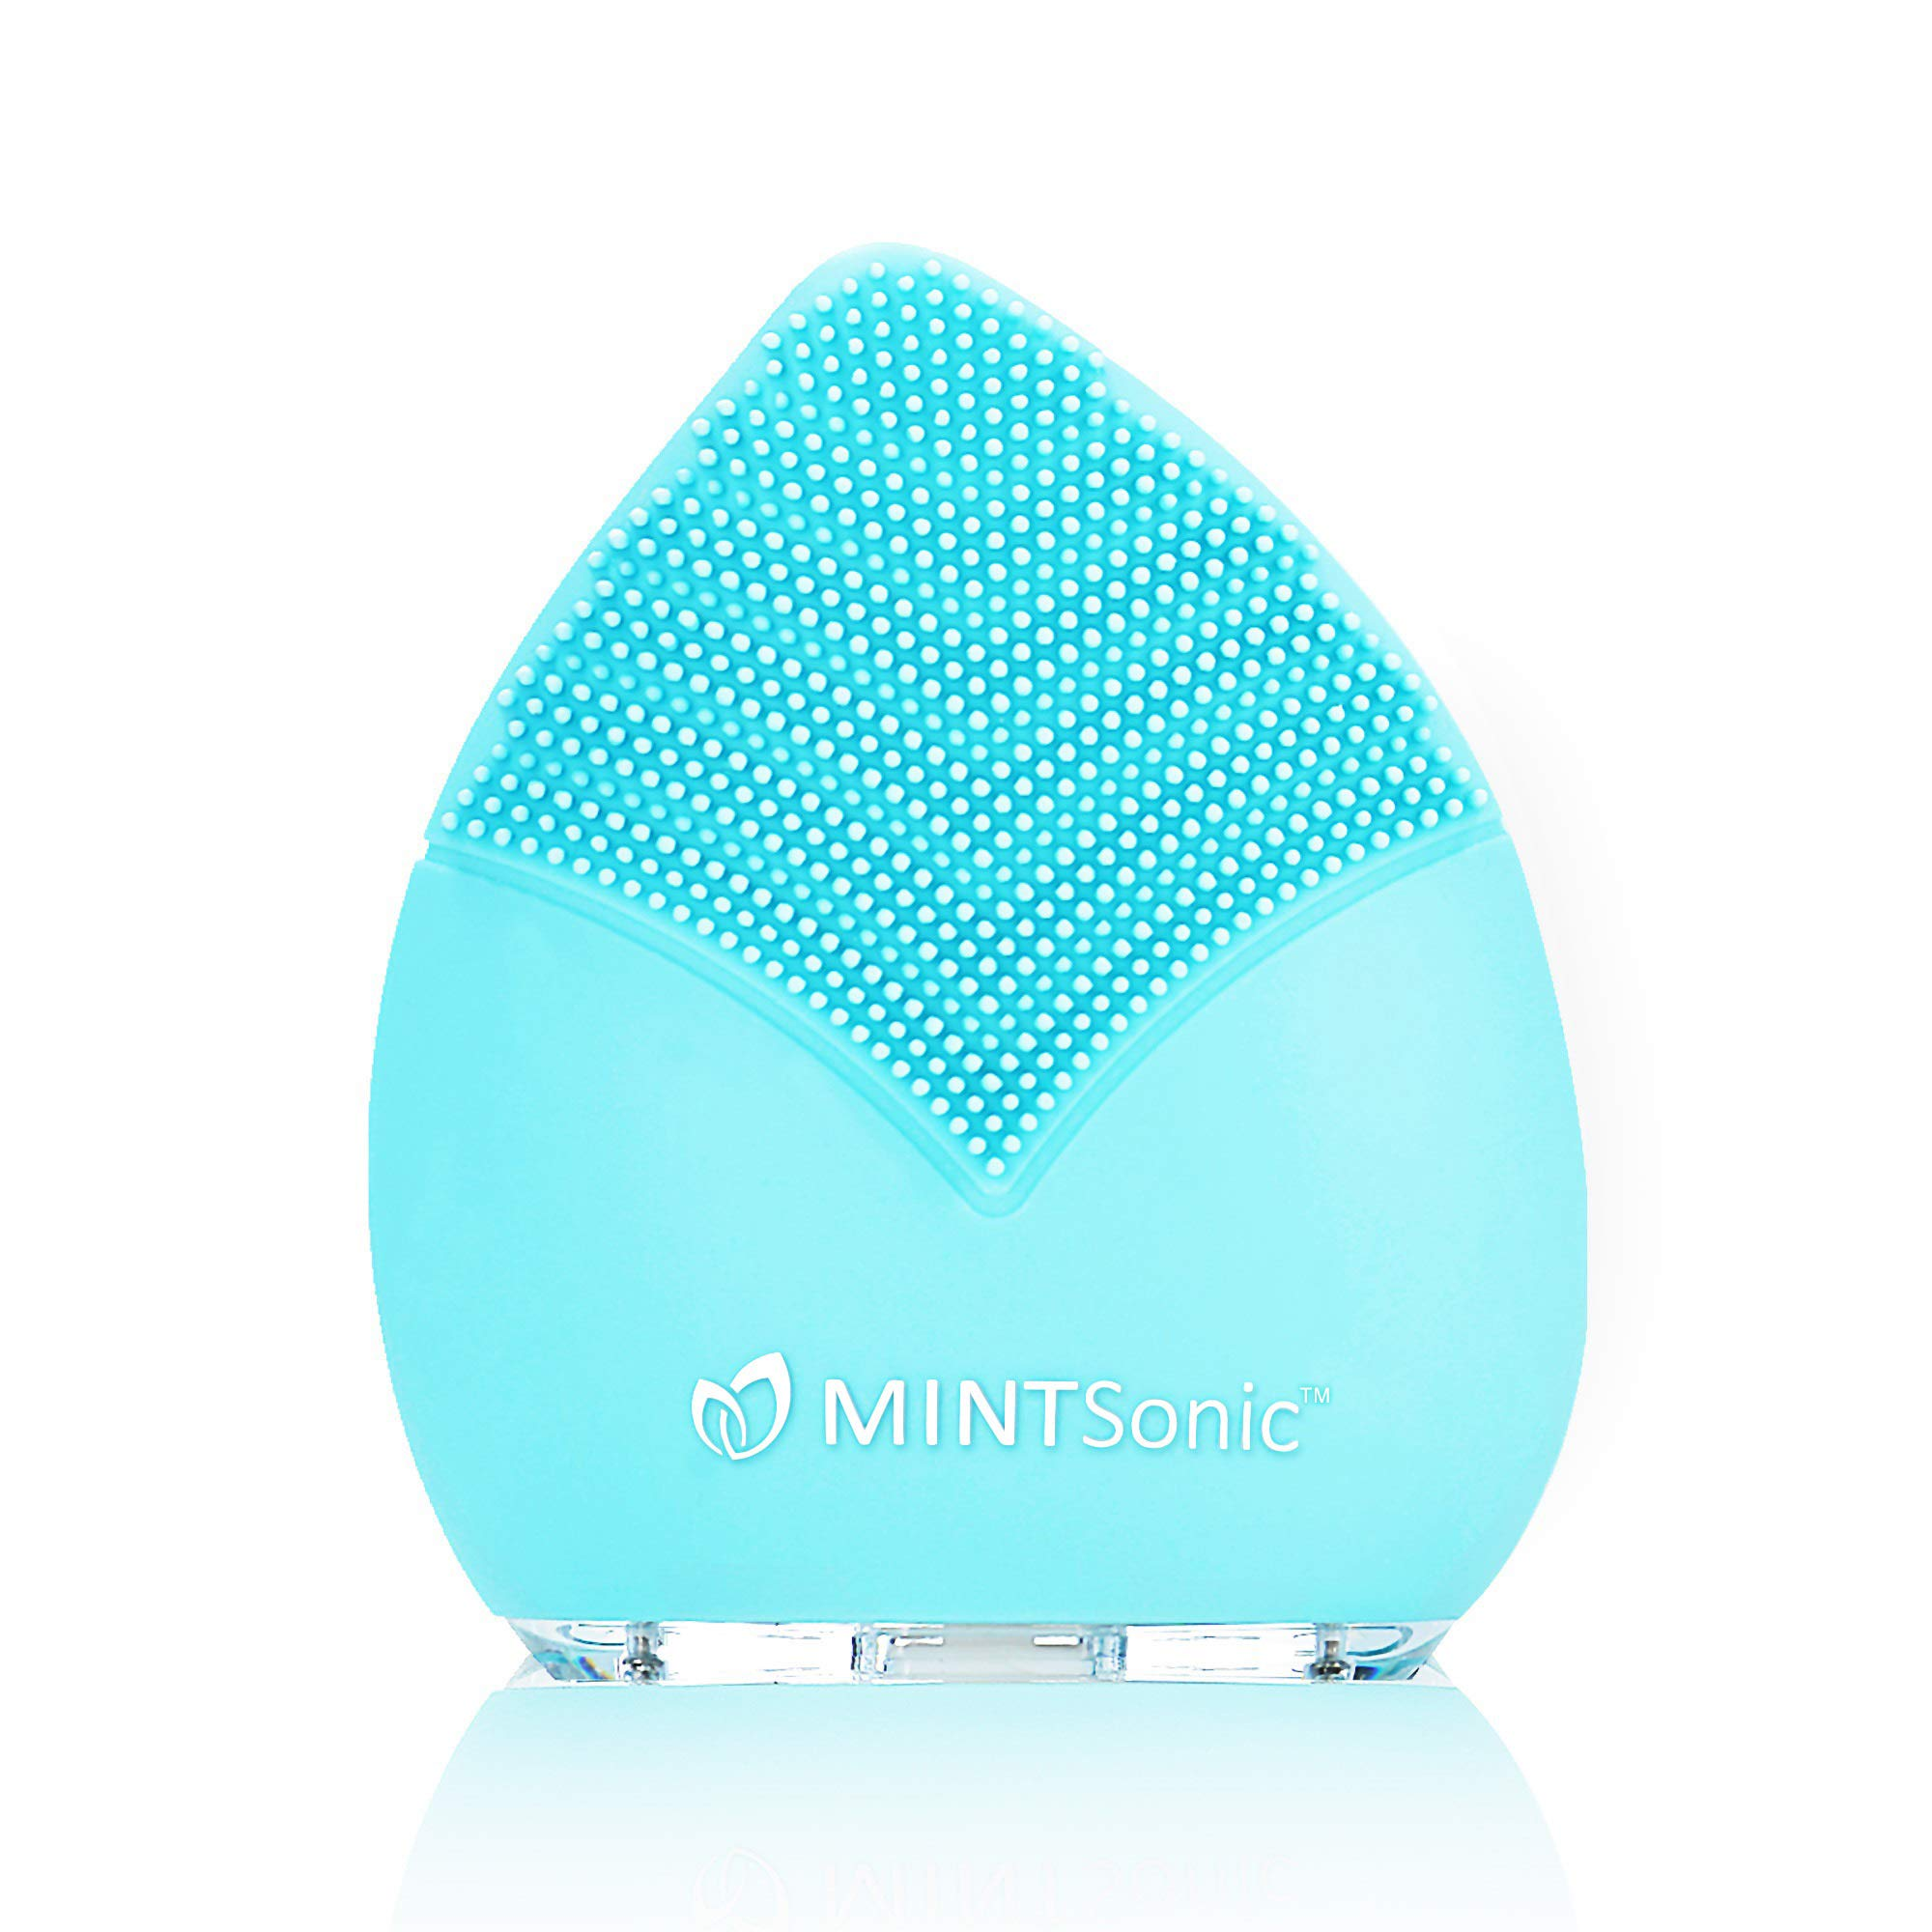 The Ultimate Sonic Facial Cleansing Brush ! Exfoliating Skin Care Electric Silicone Brush. Perfect Cleansing Tools and Brushes for Your Face in One Portable, Rechargeable Smart Device! by MINTSonic